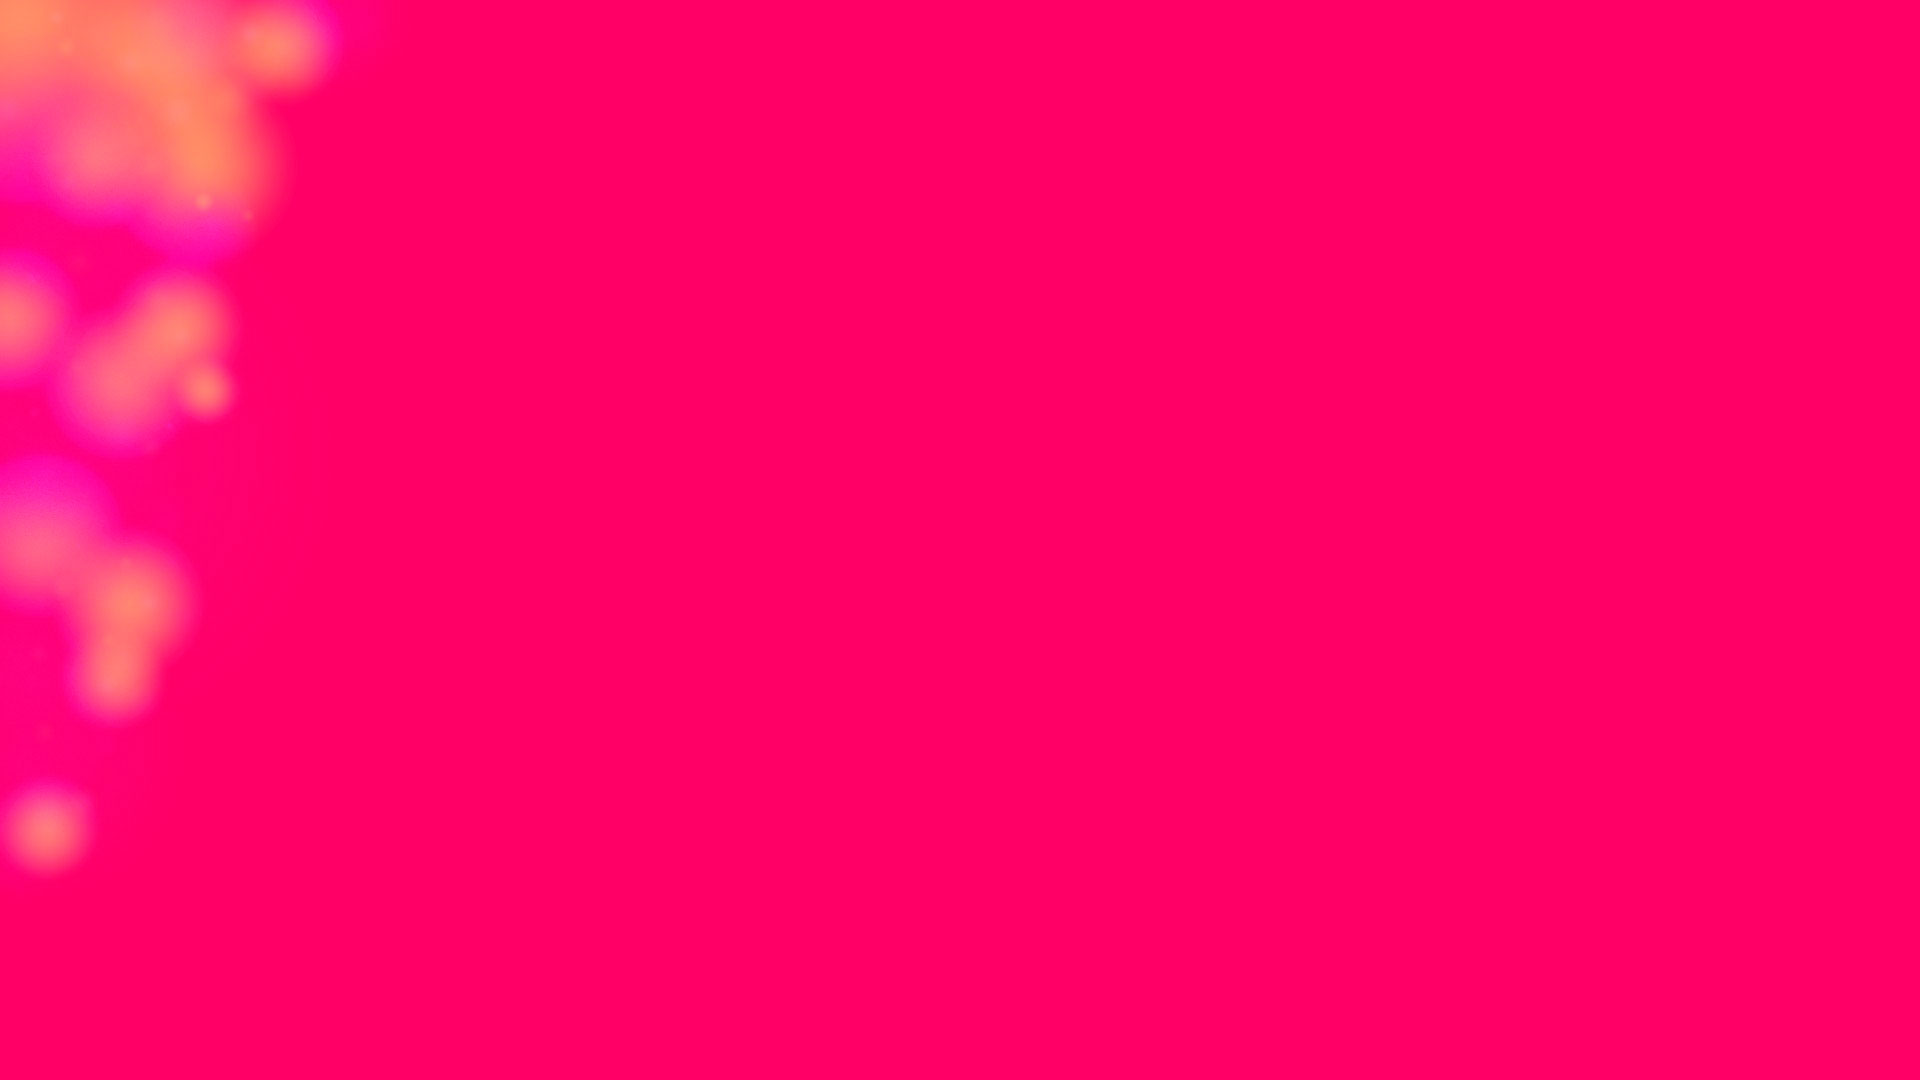 Pink Background High Definition #6752 Wallpaper